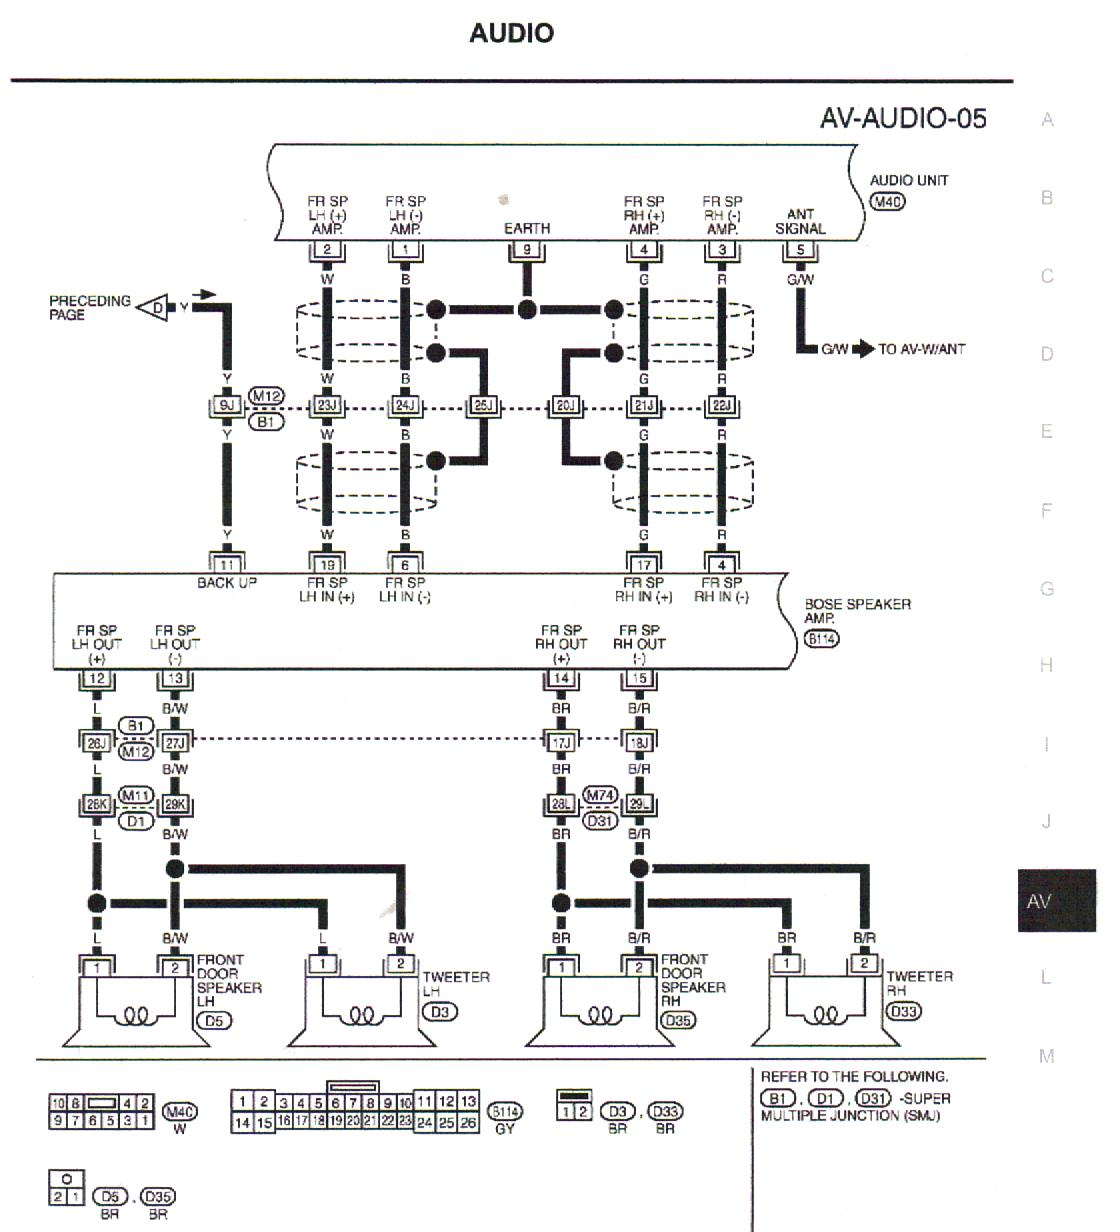 159410d1369838585 bypassing bose amplifier 03 04 g35 bose front right speaker wiring?resize=665%2C732&ssl=1 2004 chevy silverado bose wiring diagram wiring diagram Bose Speaker Schematics at alyssarenee.co